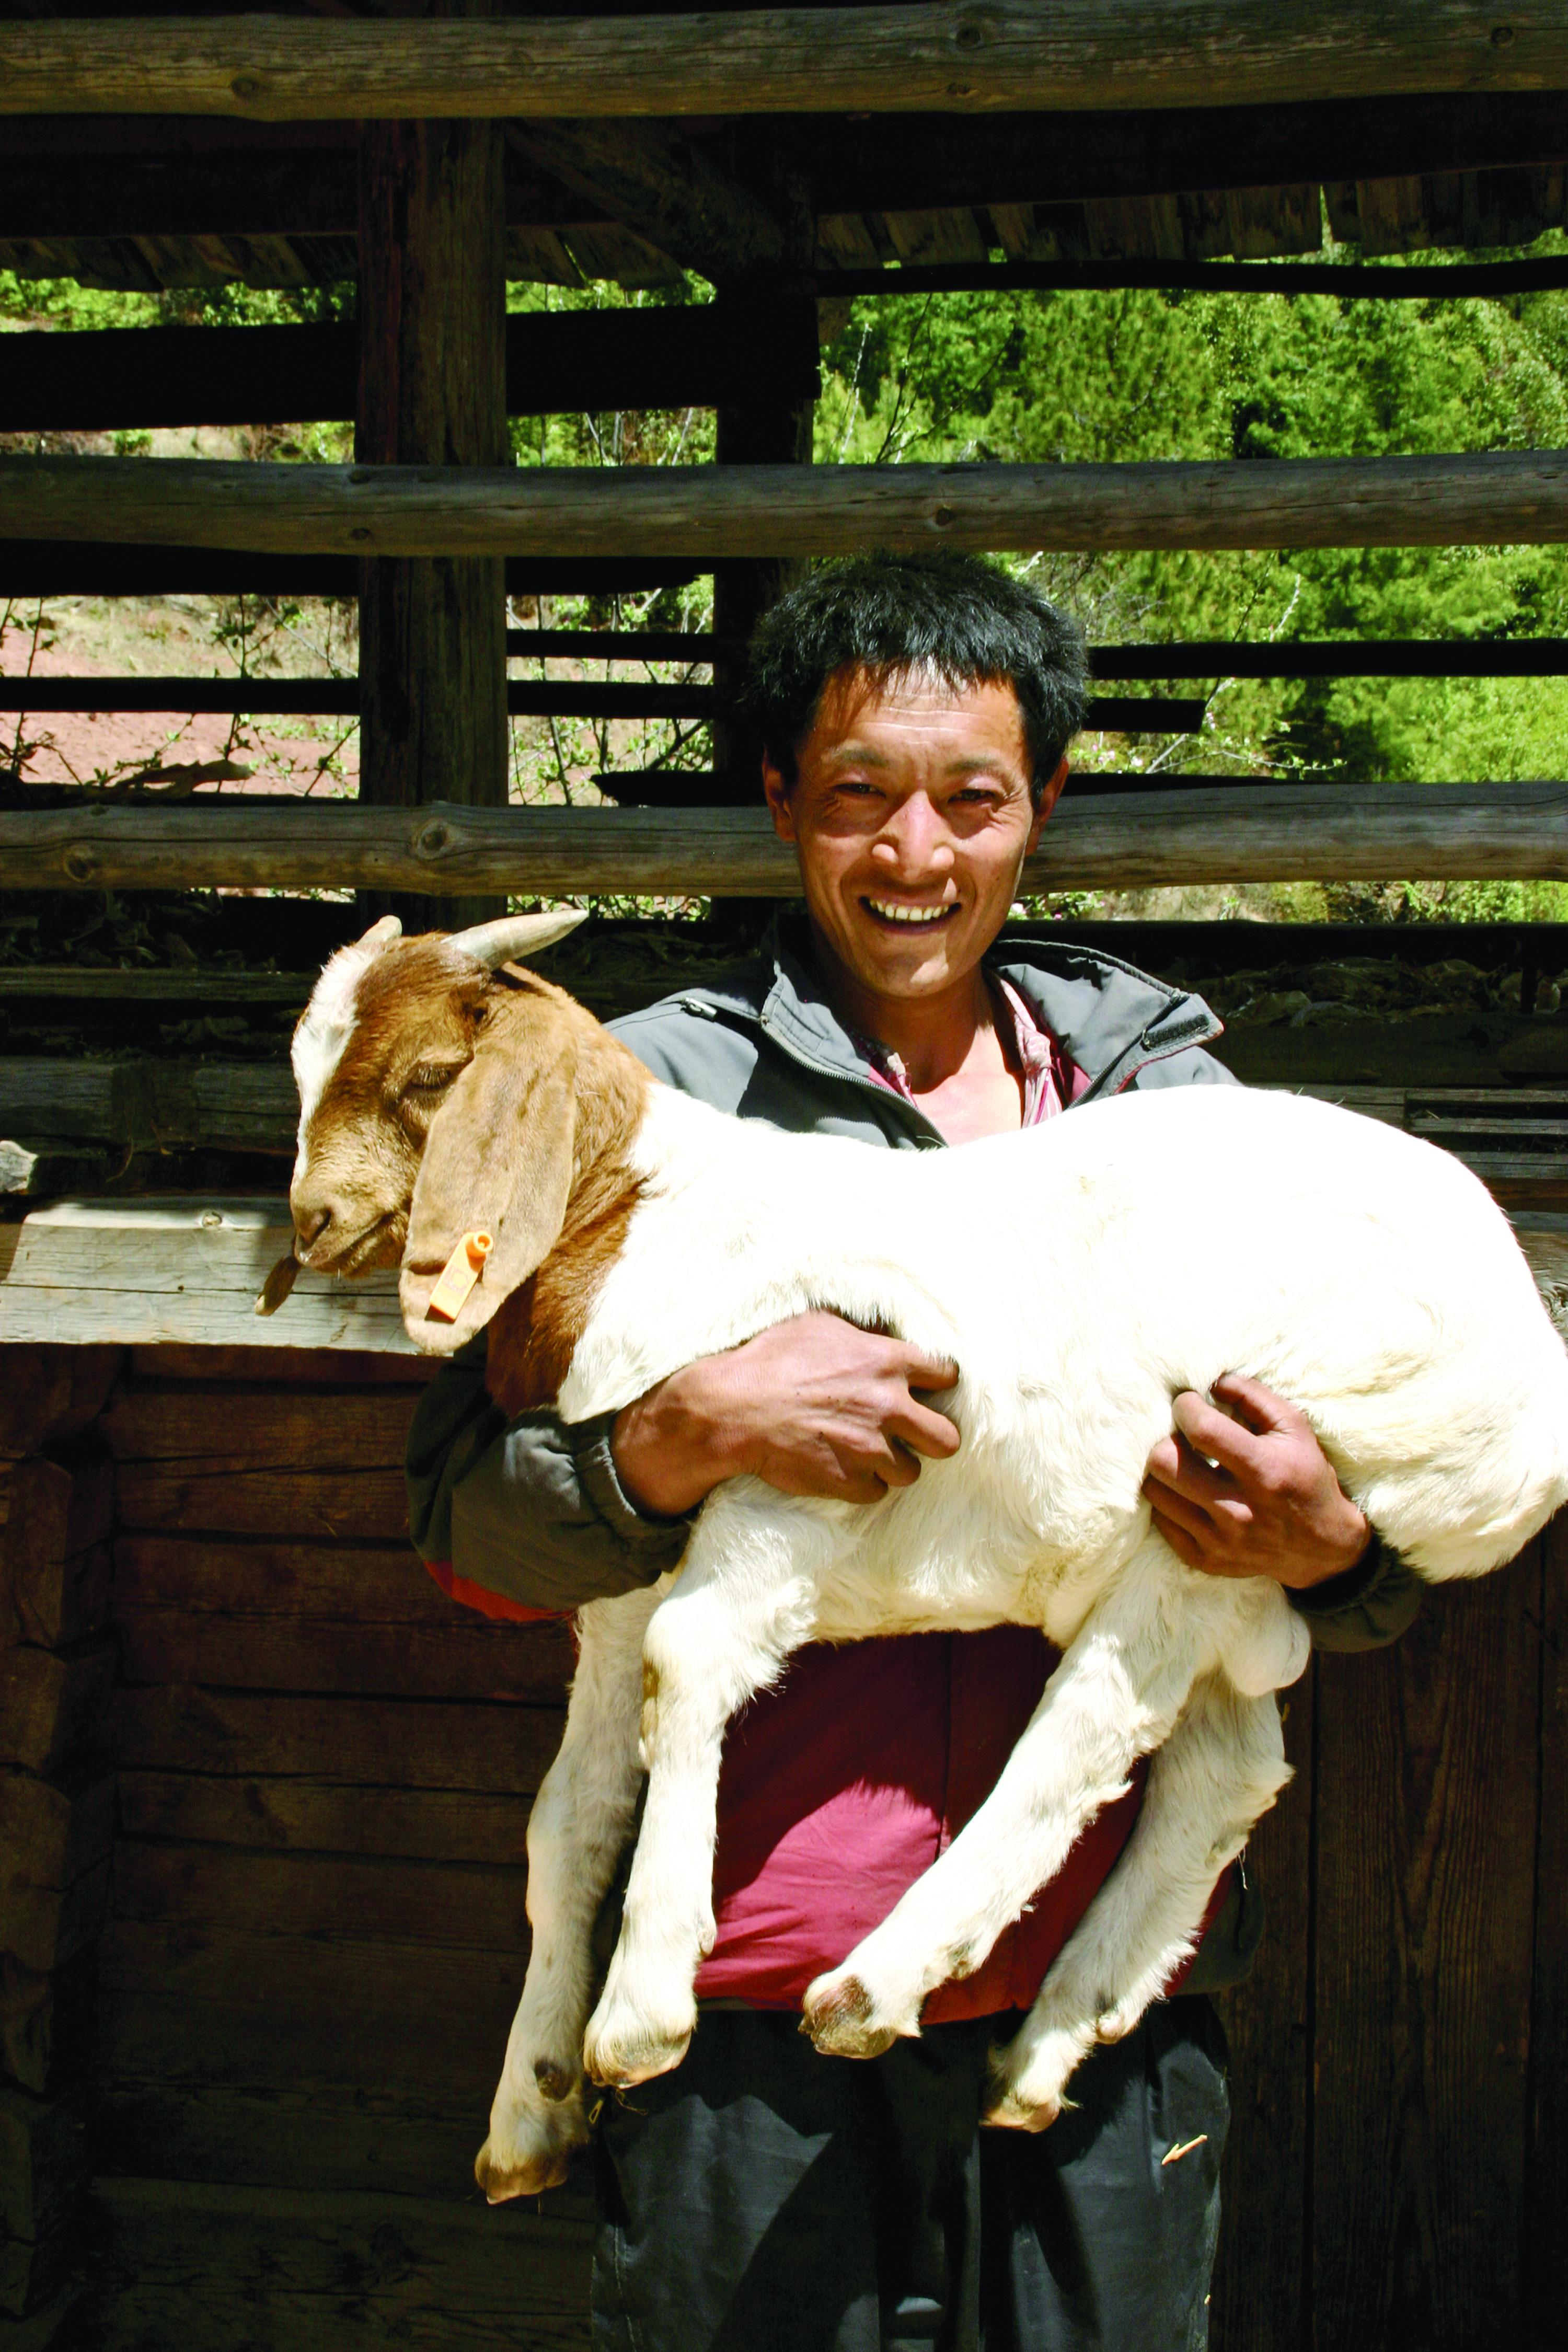 Smiling man with goat in his arms